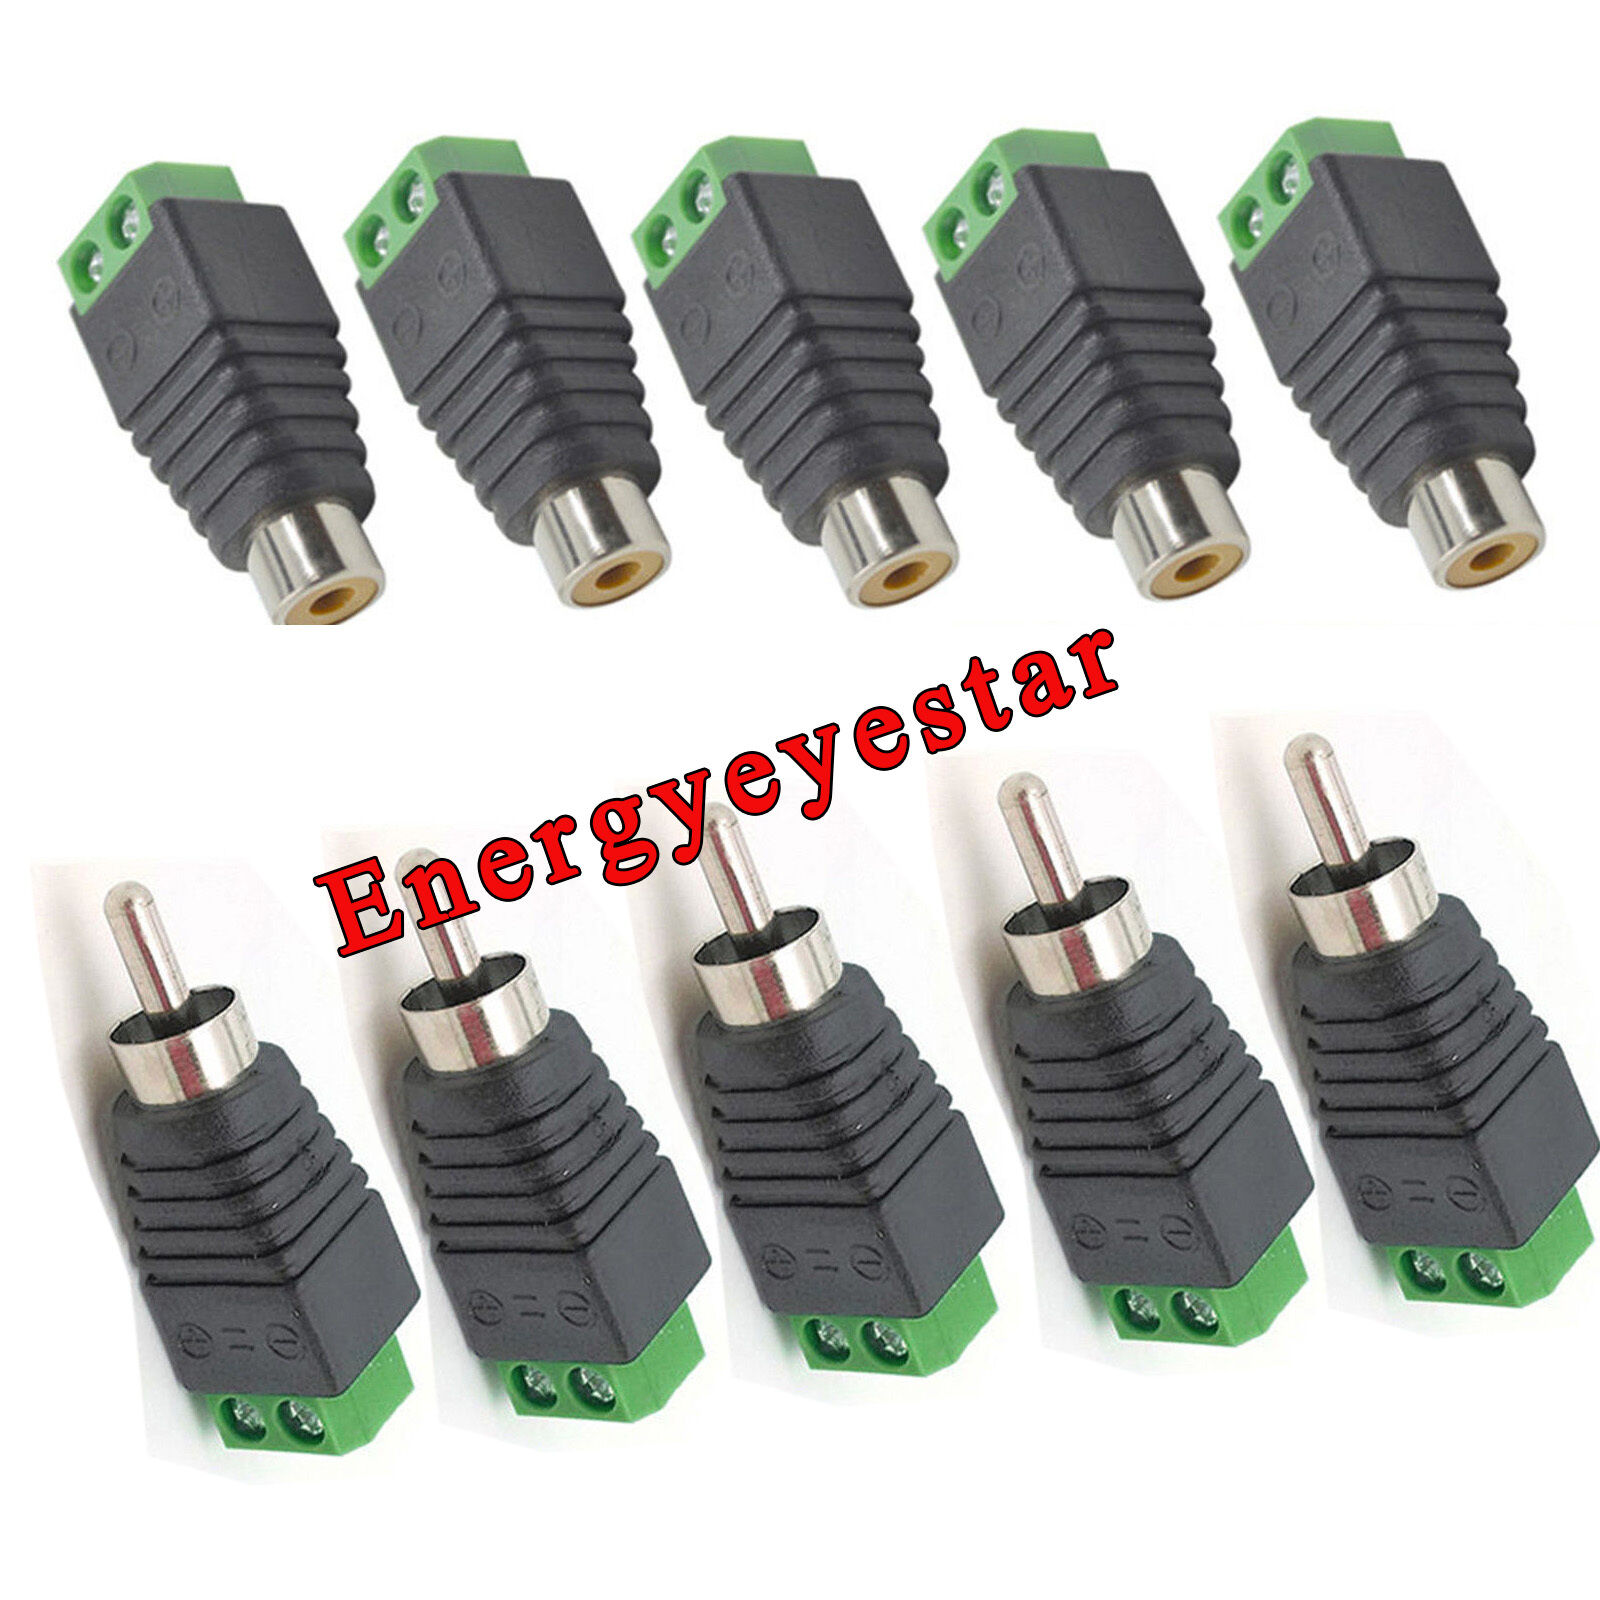 5pc Male +5pc Female Speaker Wire Cable to RCA Connector Adapter ...